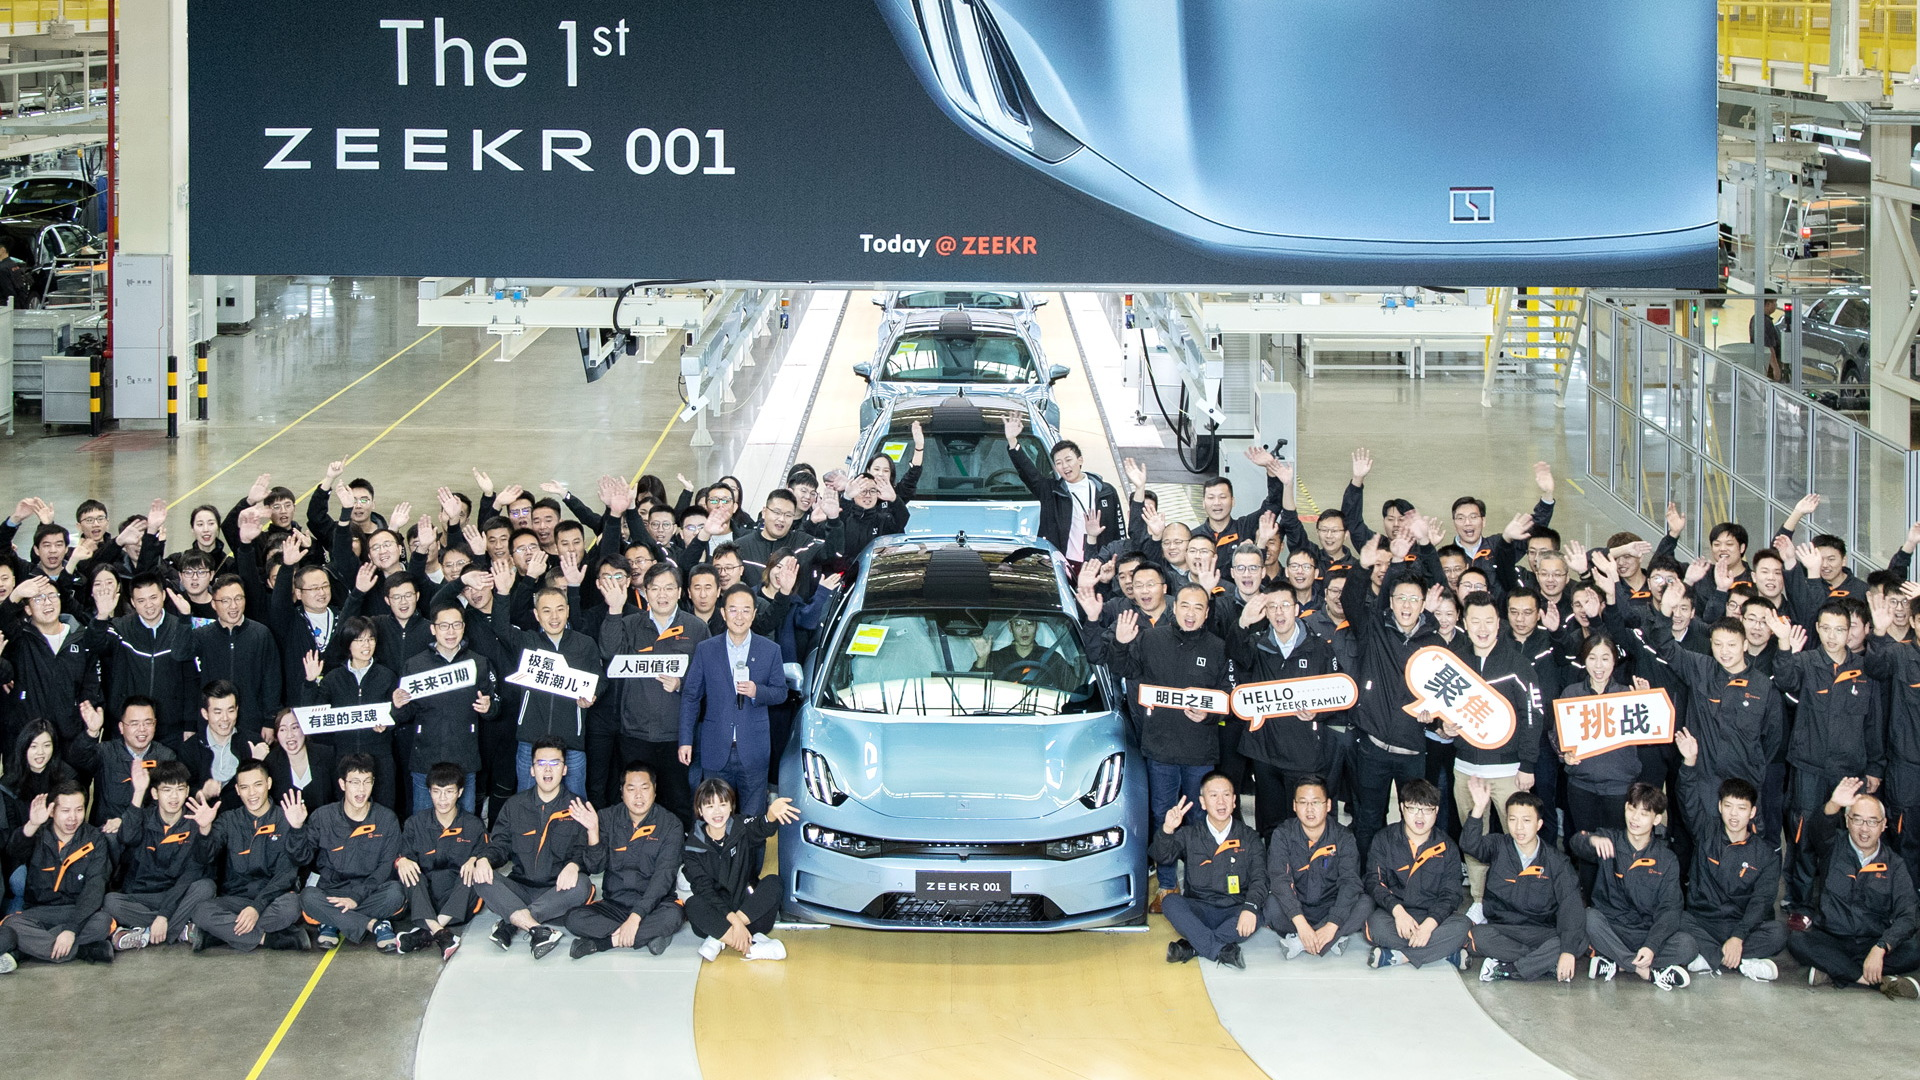 First Zeekr 001 rolls off the line at plant in Ningbo, China - October 2021